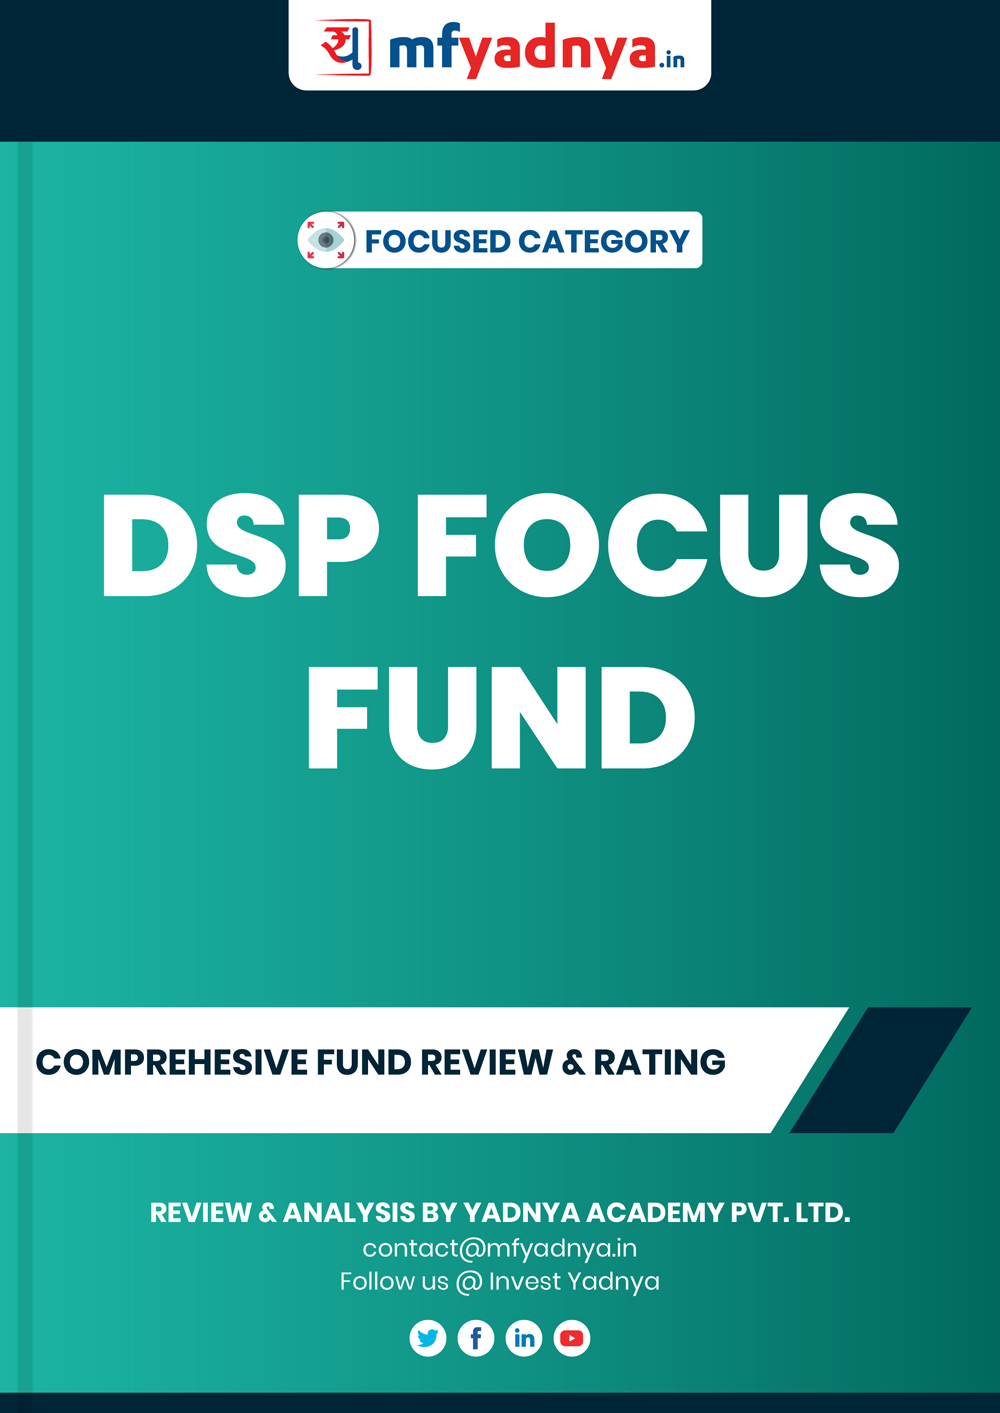 Focused Category Review - DSP Foucus Fund. Most Comprehensive and detailed MF review based on Yadnya's proprietary methodology of Green, Yellow & Red Star. Detailed Analysis & Review based on Sept 30th, 2019 data.